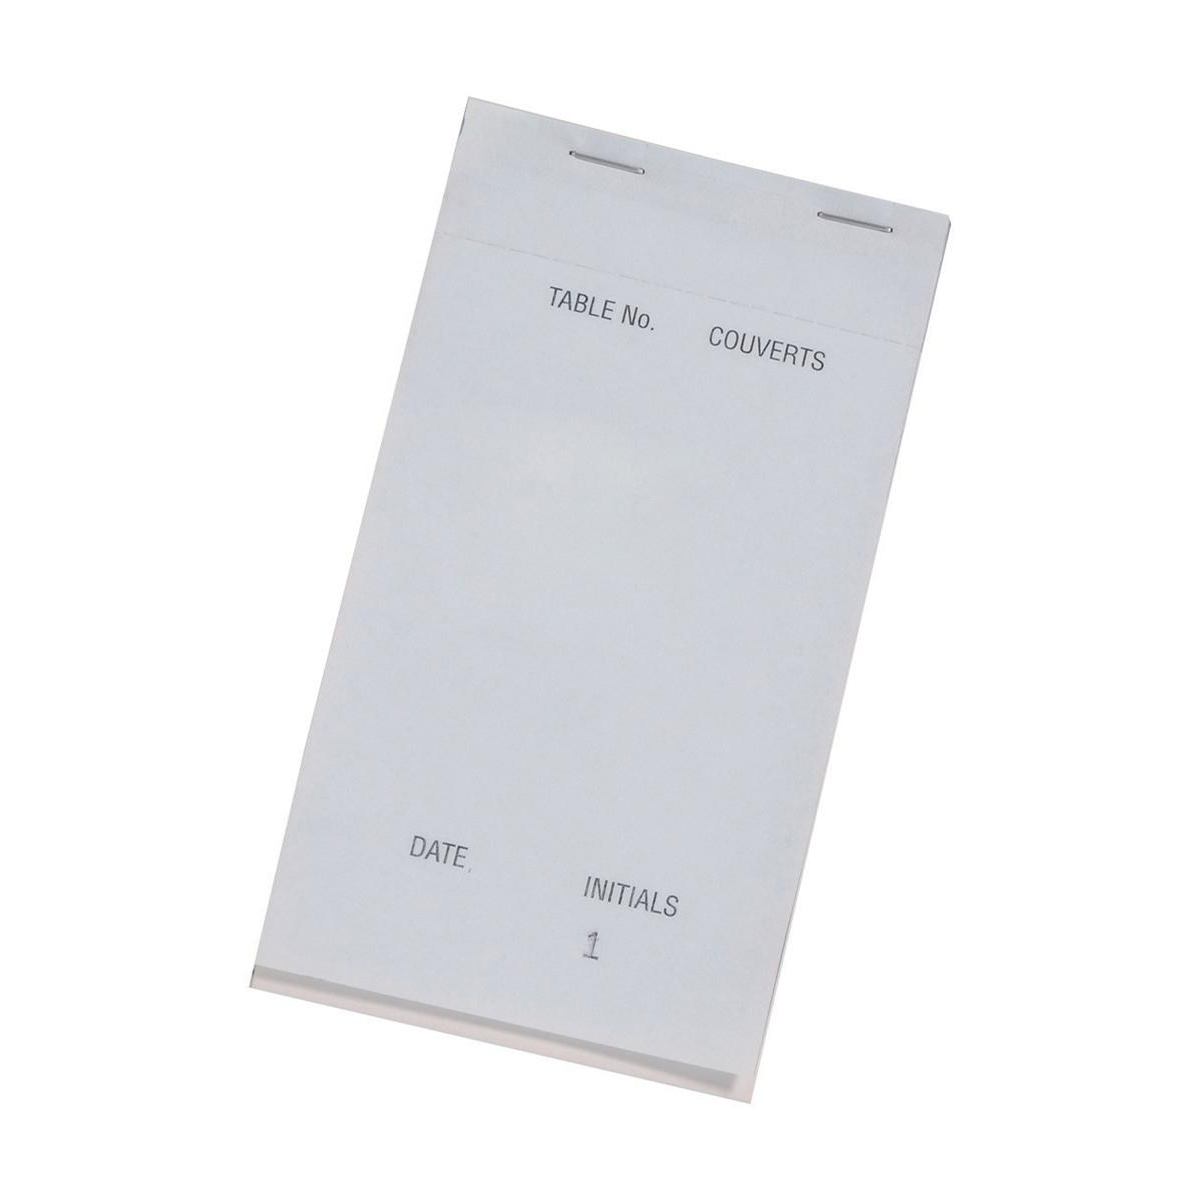 Duplicate Pad Carbonless Perforated Numbered 1-50 95x165mm [Pack 50]